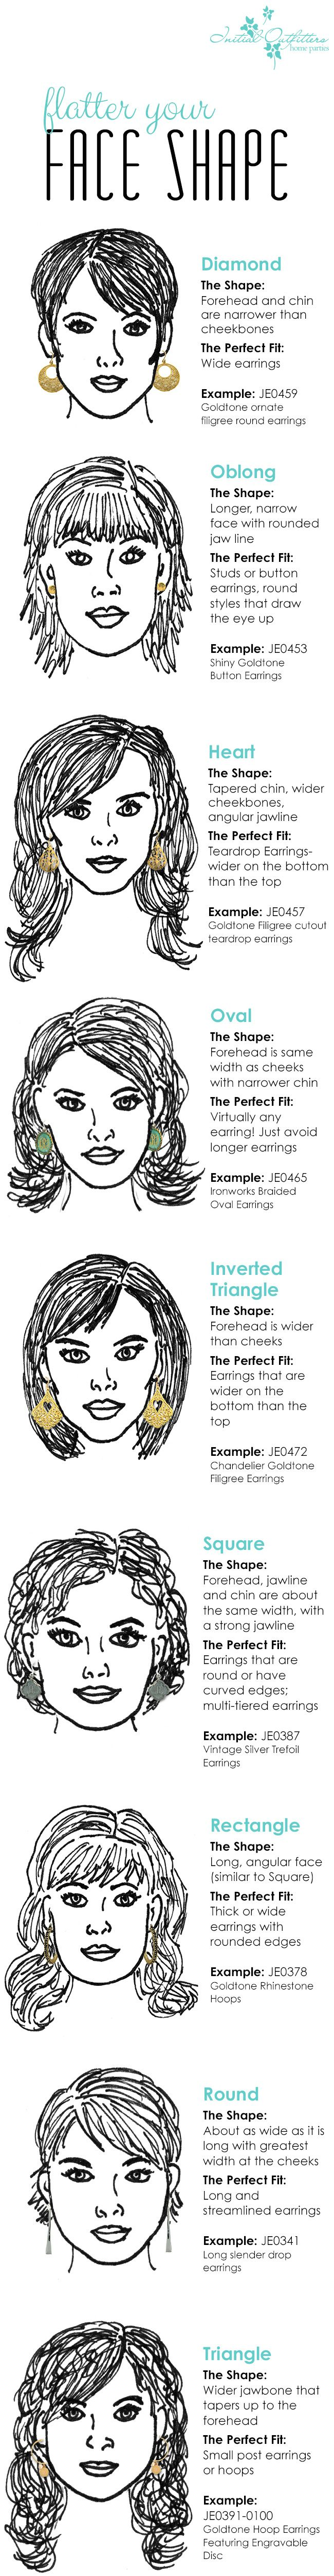 15 tips and tricks on how to flatter your face shape | my